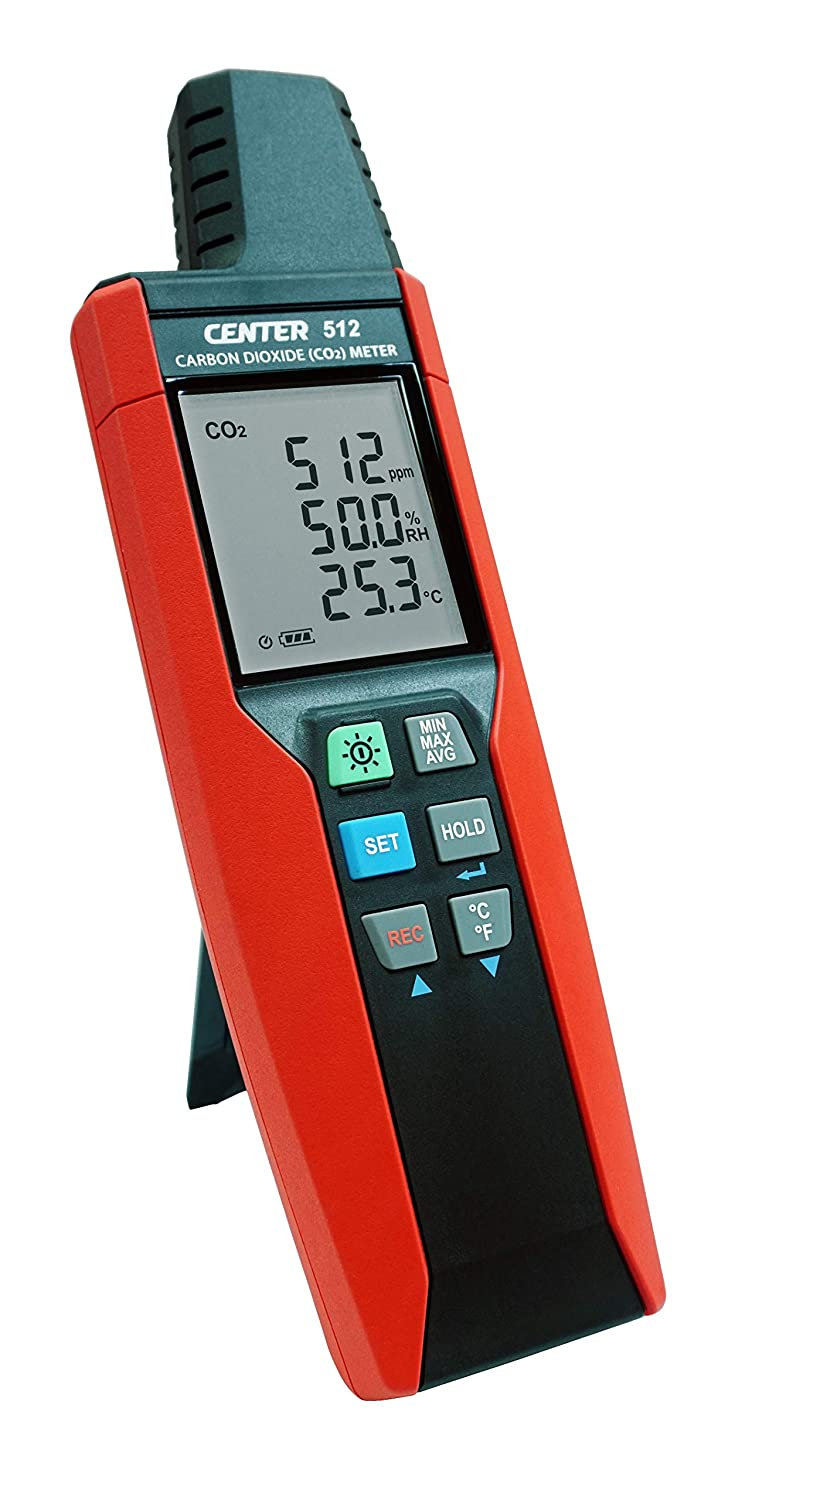 CO2 Meter. Handheld, Indoor Air Quality Meter for Carbon Dioxide/Temperature/Humidity. Fast, Accurate, Portable IAQ Monitor with Datalogger. Includes USB Cable, Software, Carry Case.